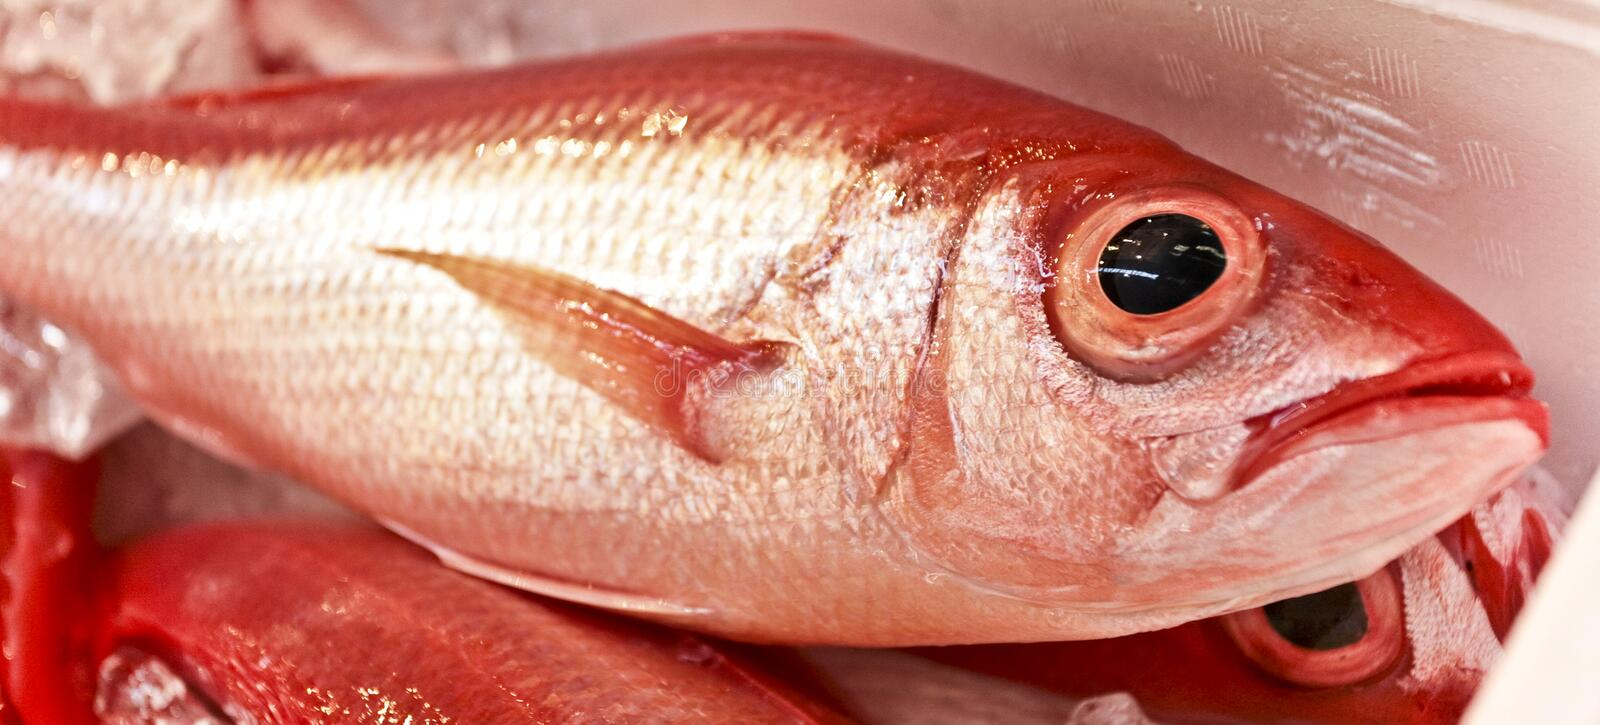 Poissons rouges photos stock